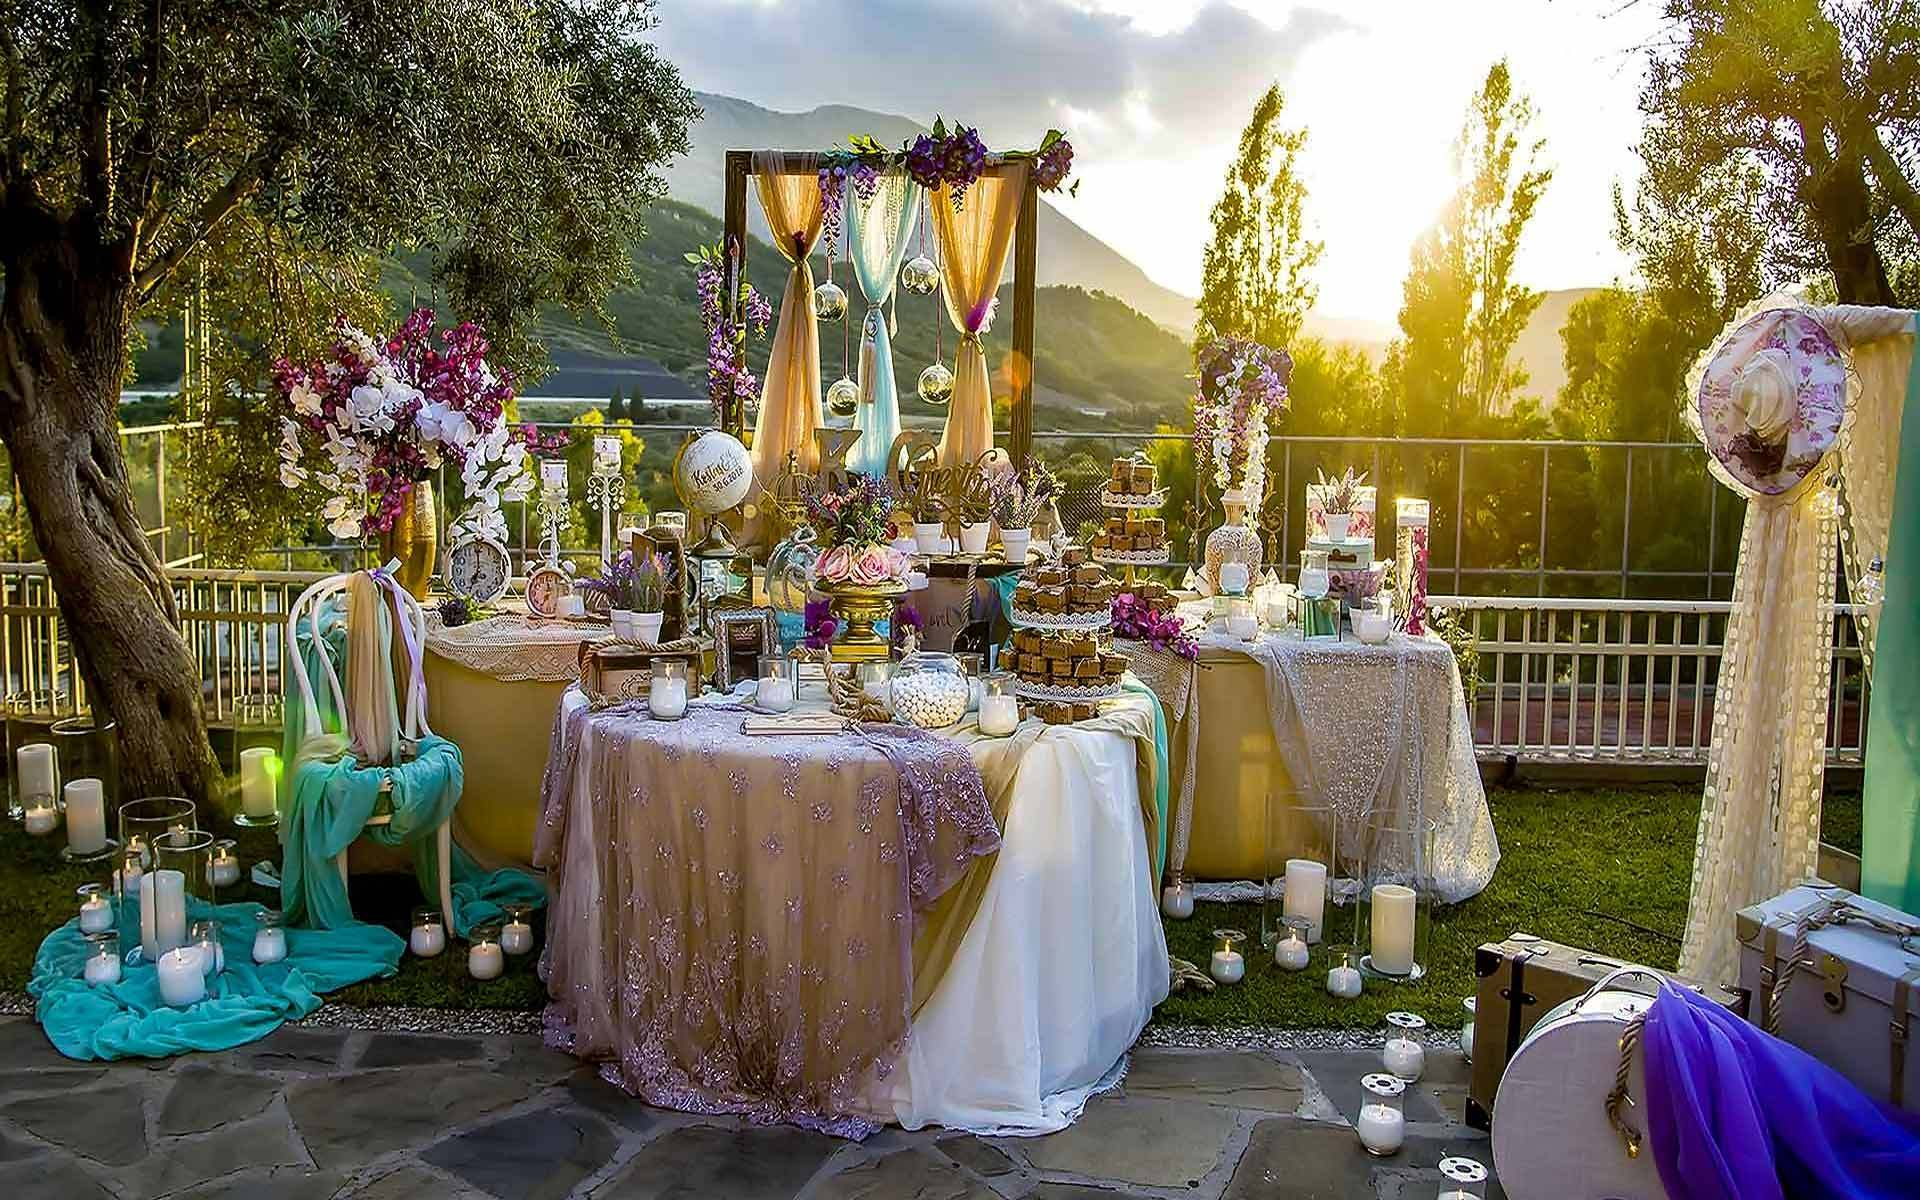 Stunning-Wedding-Guest-Book-Table-For-Your-Guest-To-Sign-In